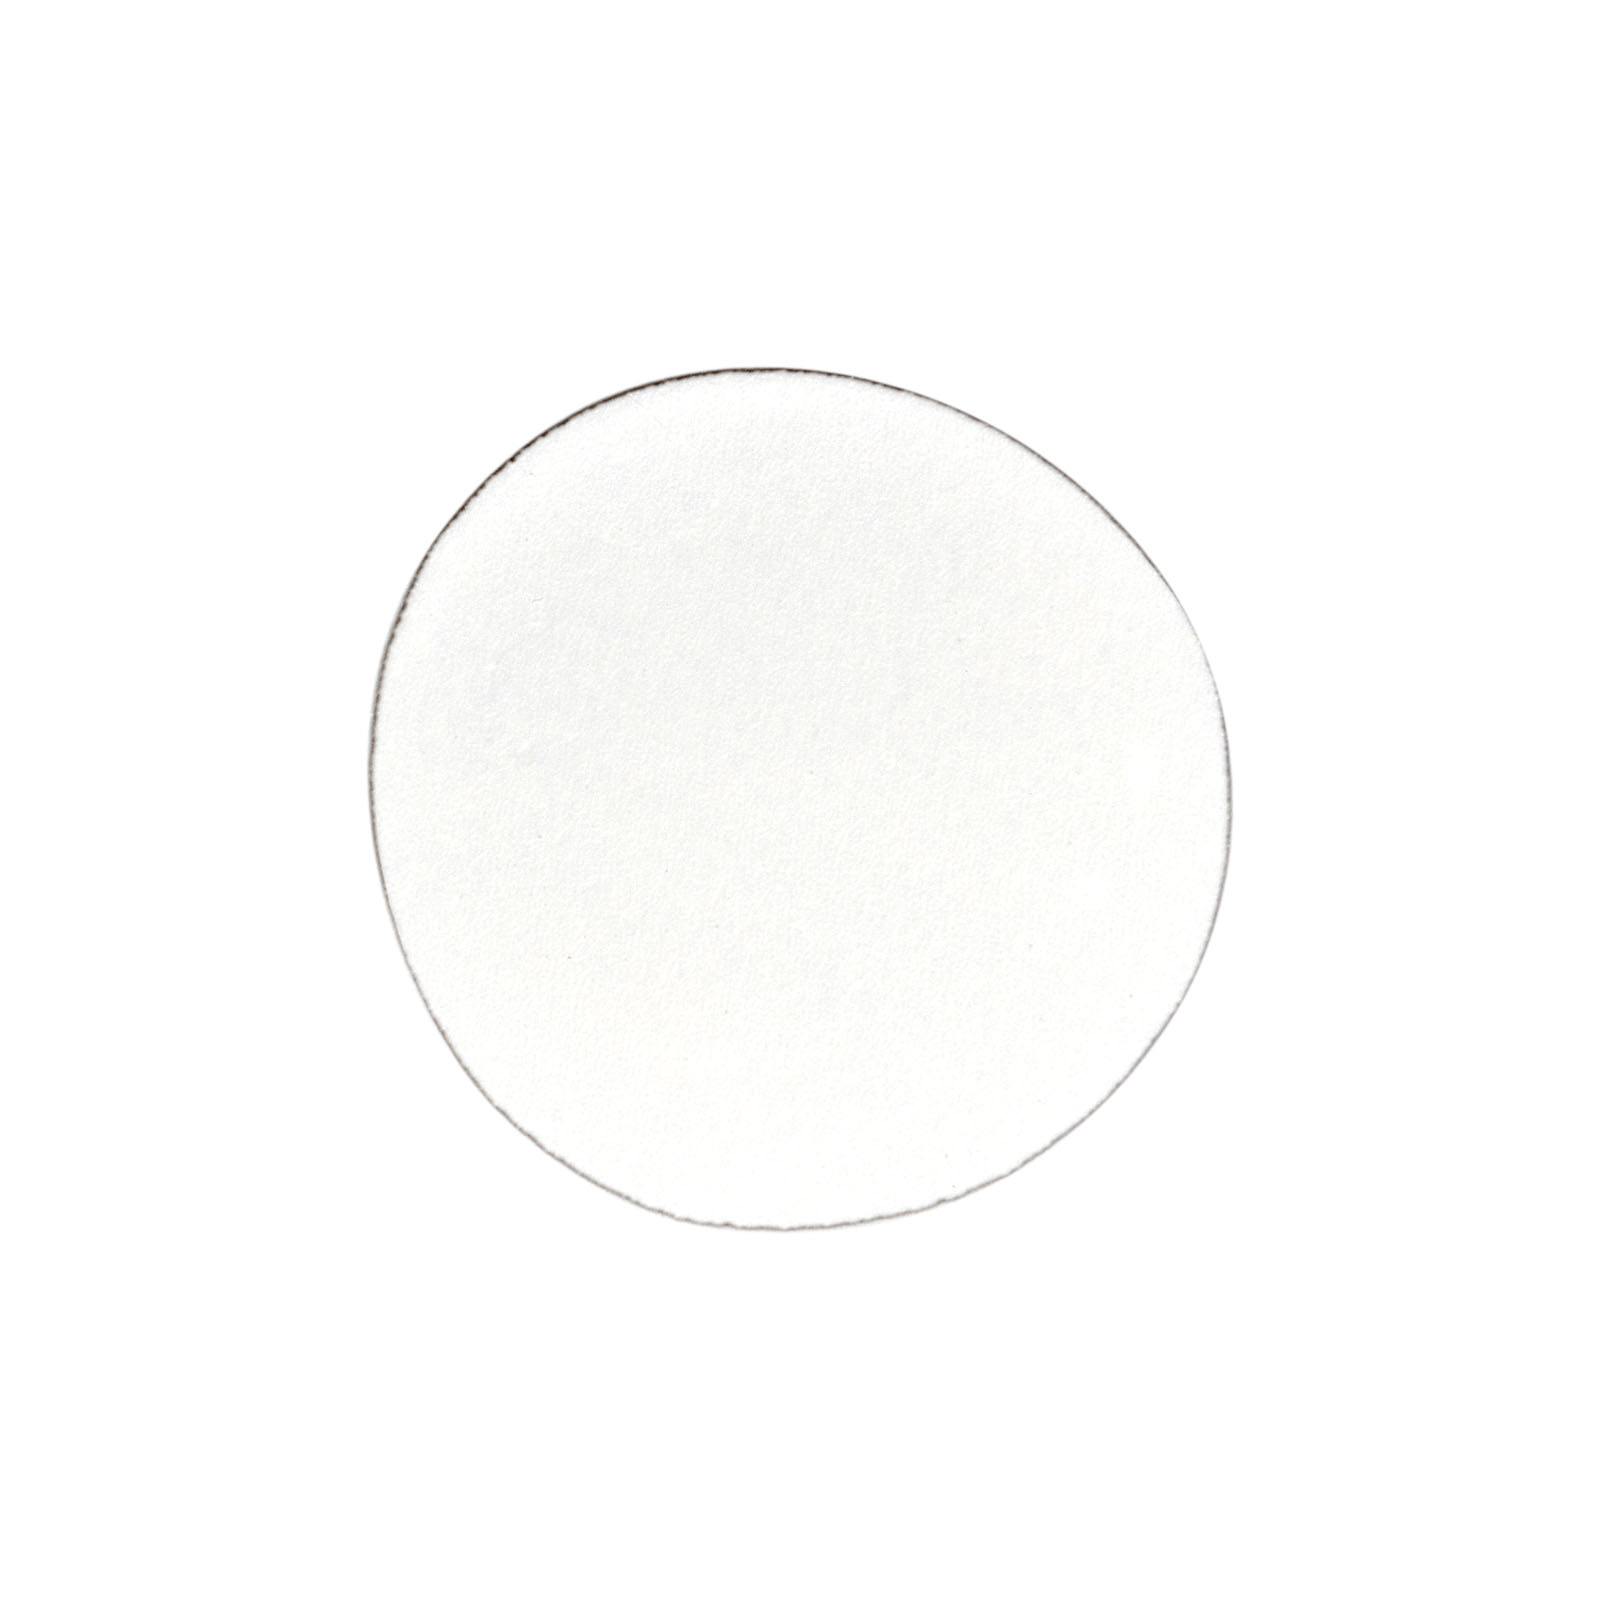 The Ordinary swatch of Ascorbyl Tetraisopalmitate Solution 20% in Vitamin F